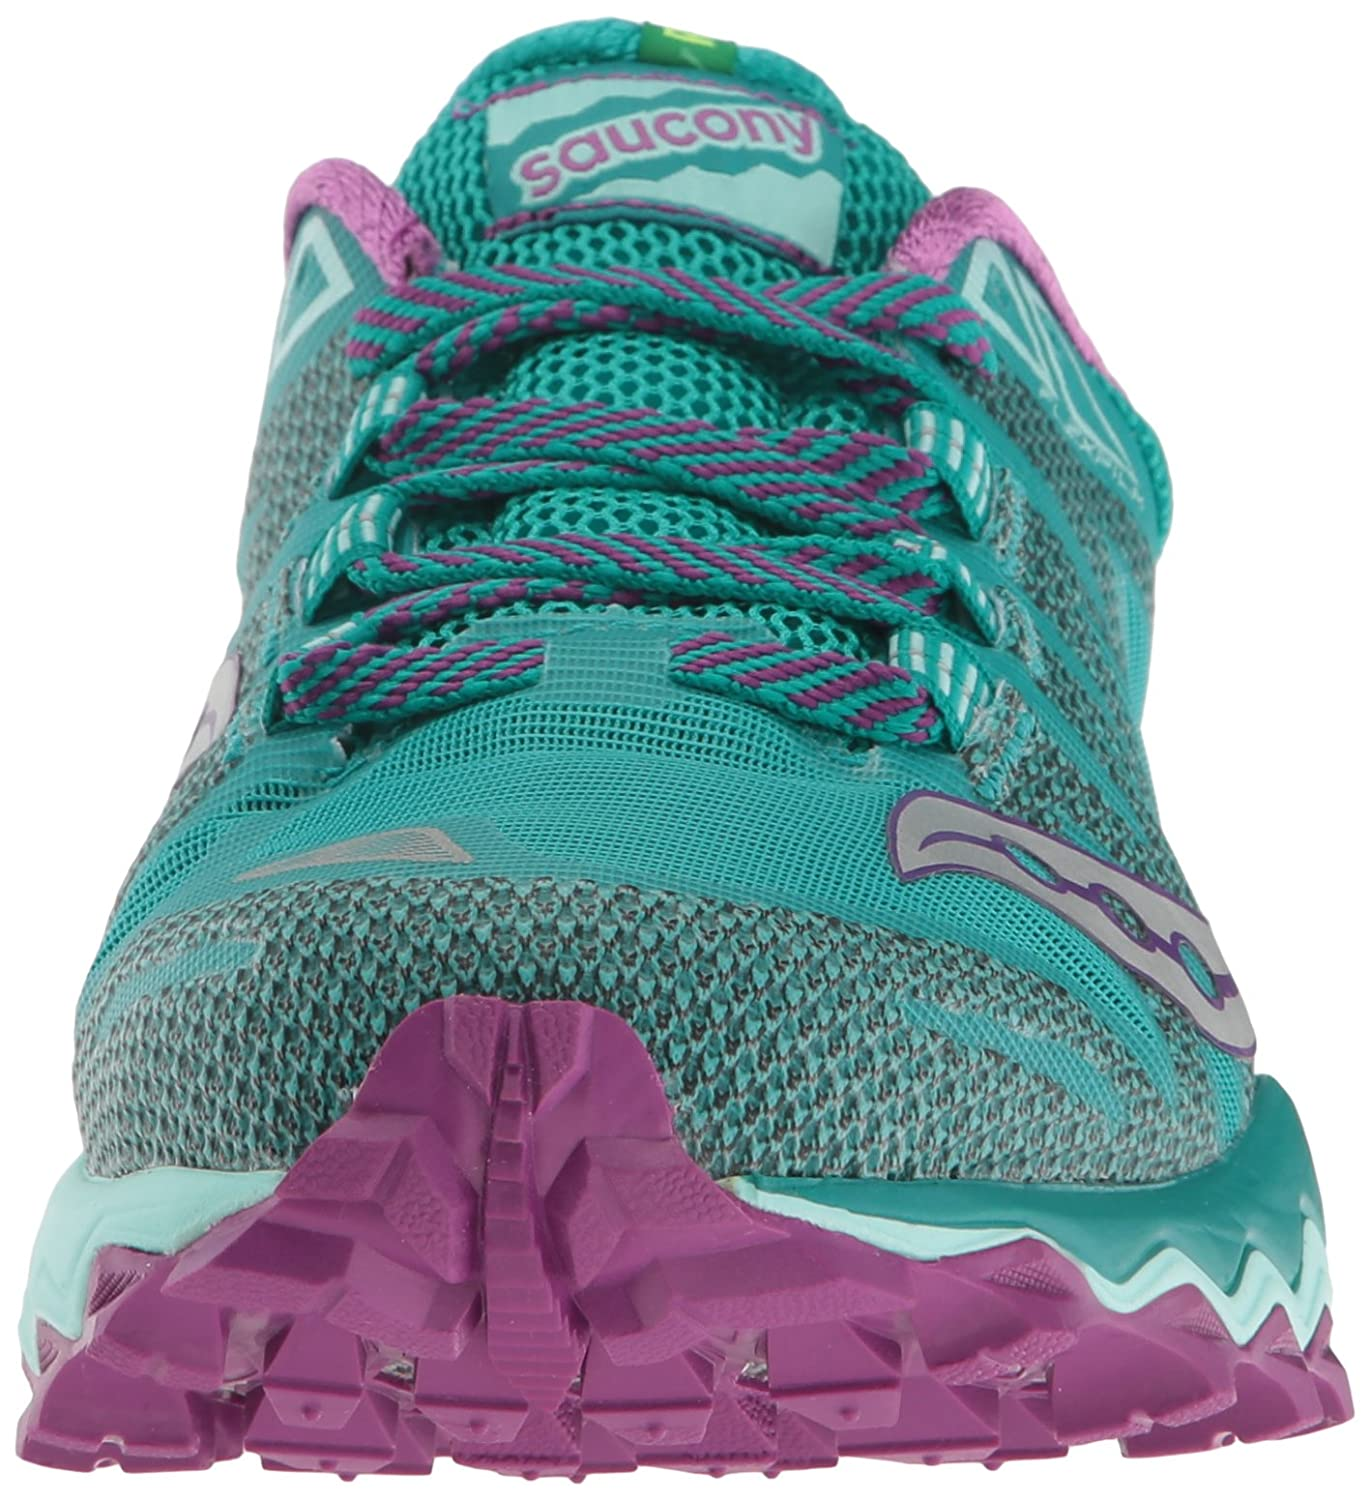 Saucony Women's Peregrine 7 Trail Running Shoe B01GJYD584 6.5 B(M) US|Teal/Purple/Citron